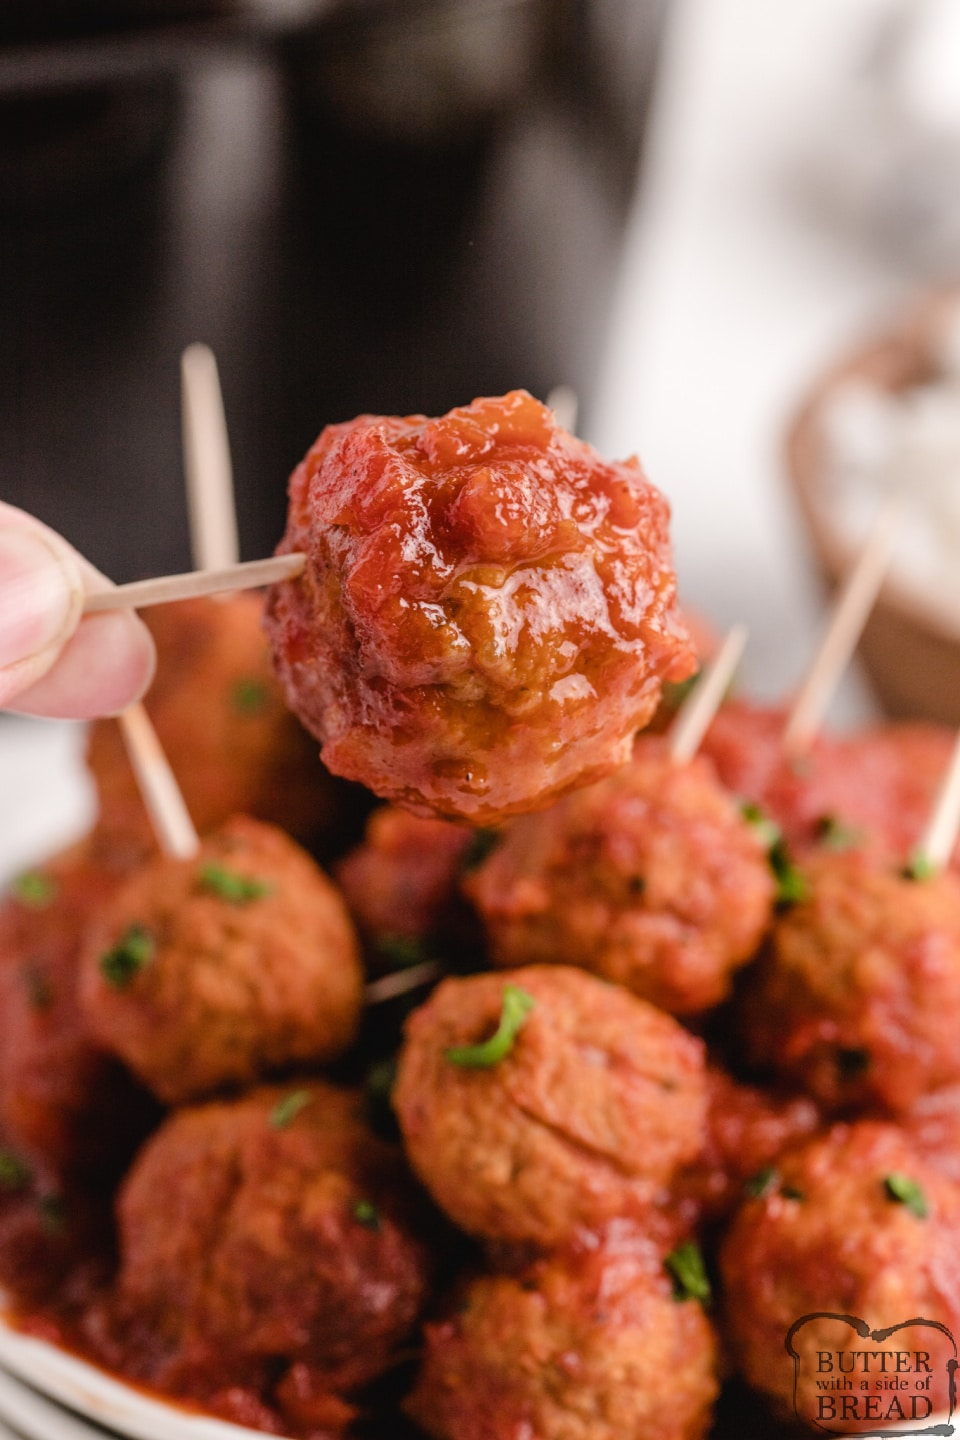 Crockpot Sweet and Sour Meatballsmade with frozen meatballs and a simple homemade sweet and sour sauce. Sweet and Sour Meatballs are perfect for an appetizer or for a main dish!